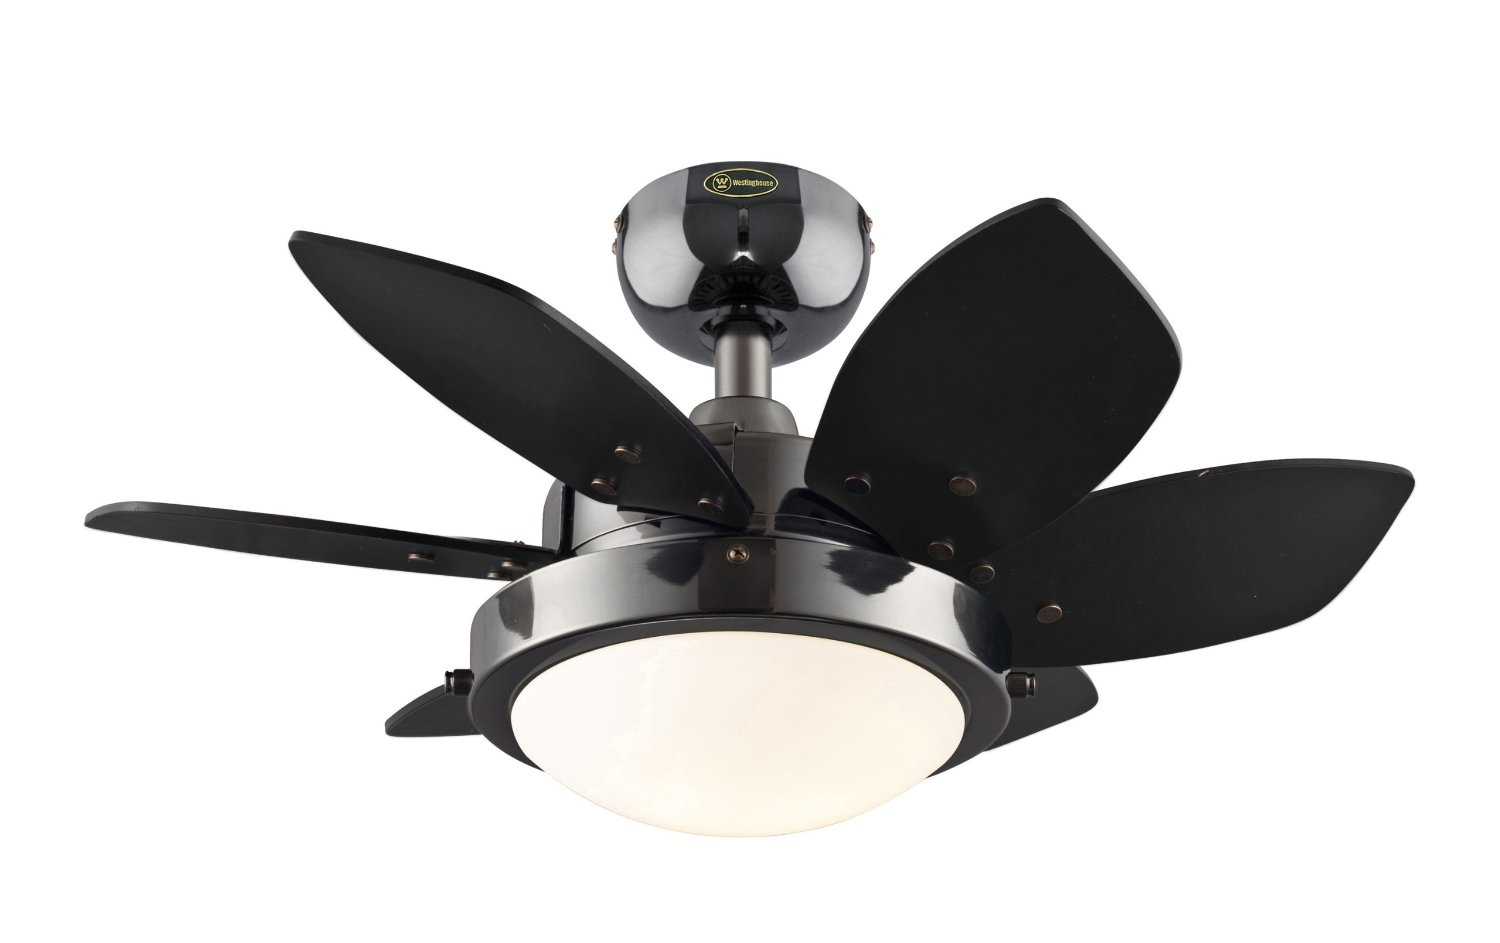 Small Lighted Ceiling Fans 5 Best Small Ceiling Fans Tool Box